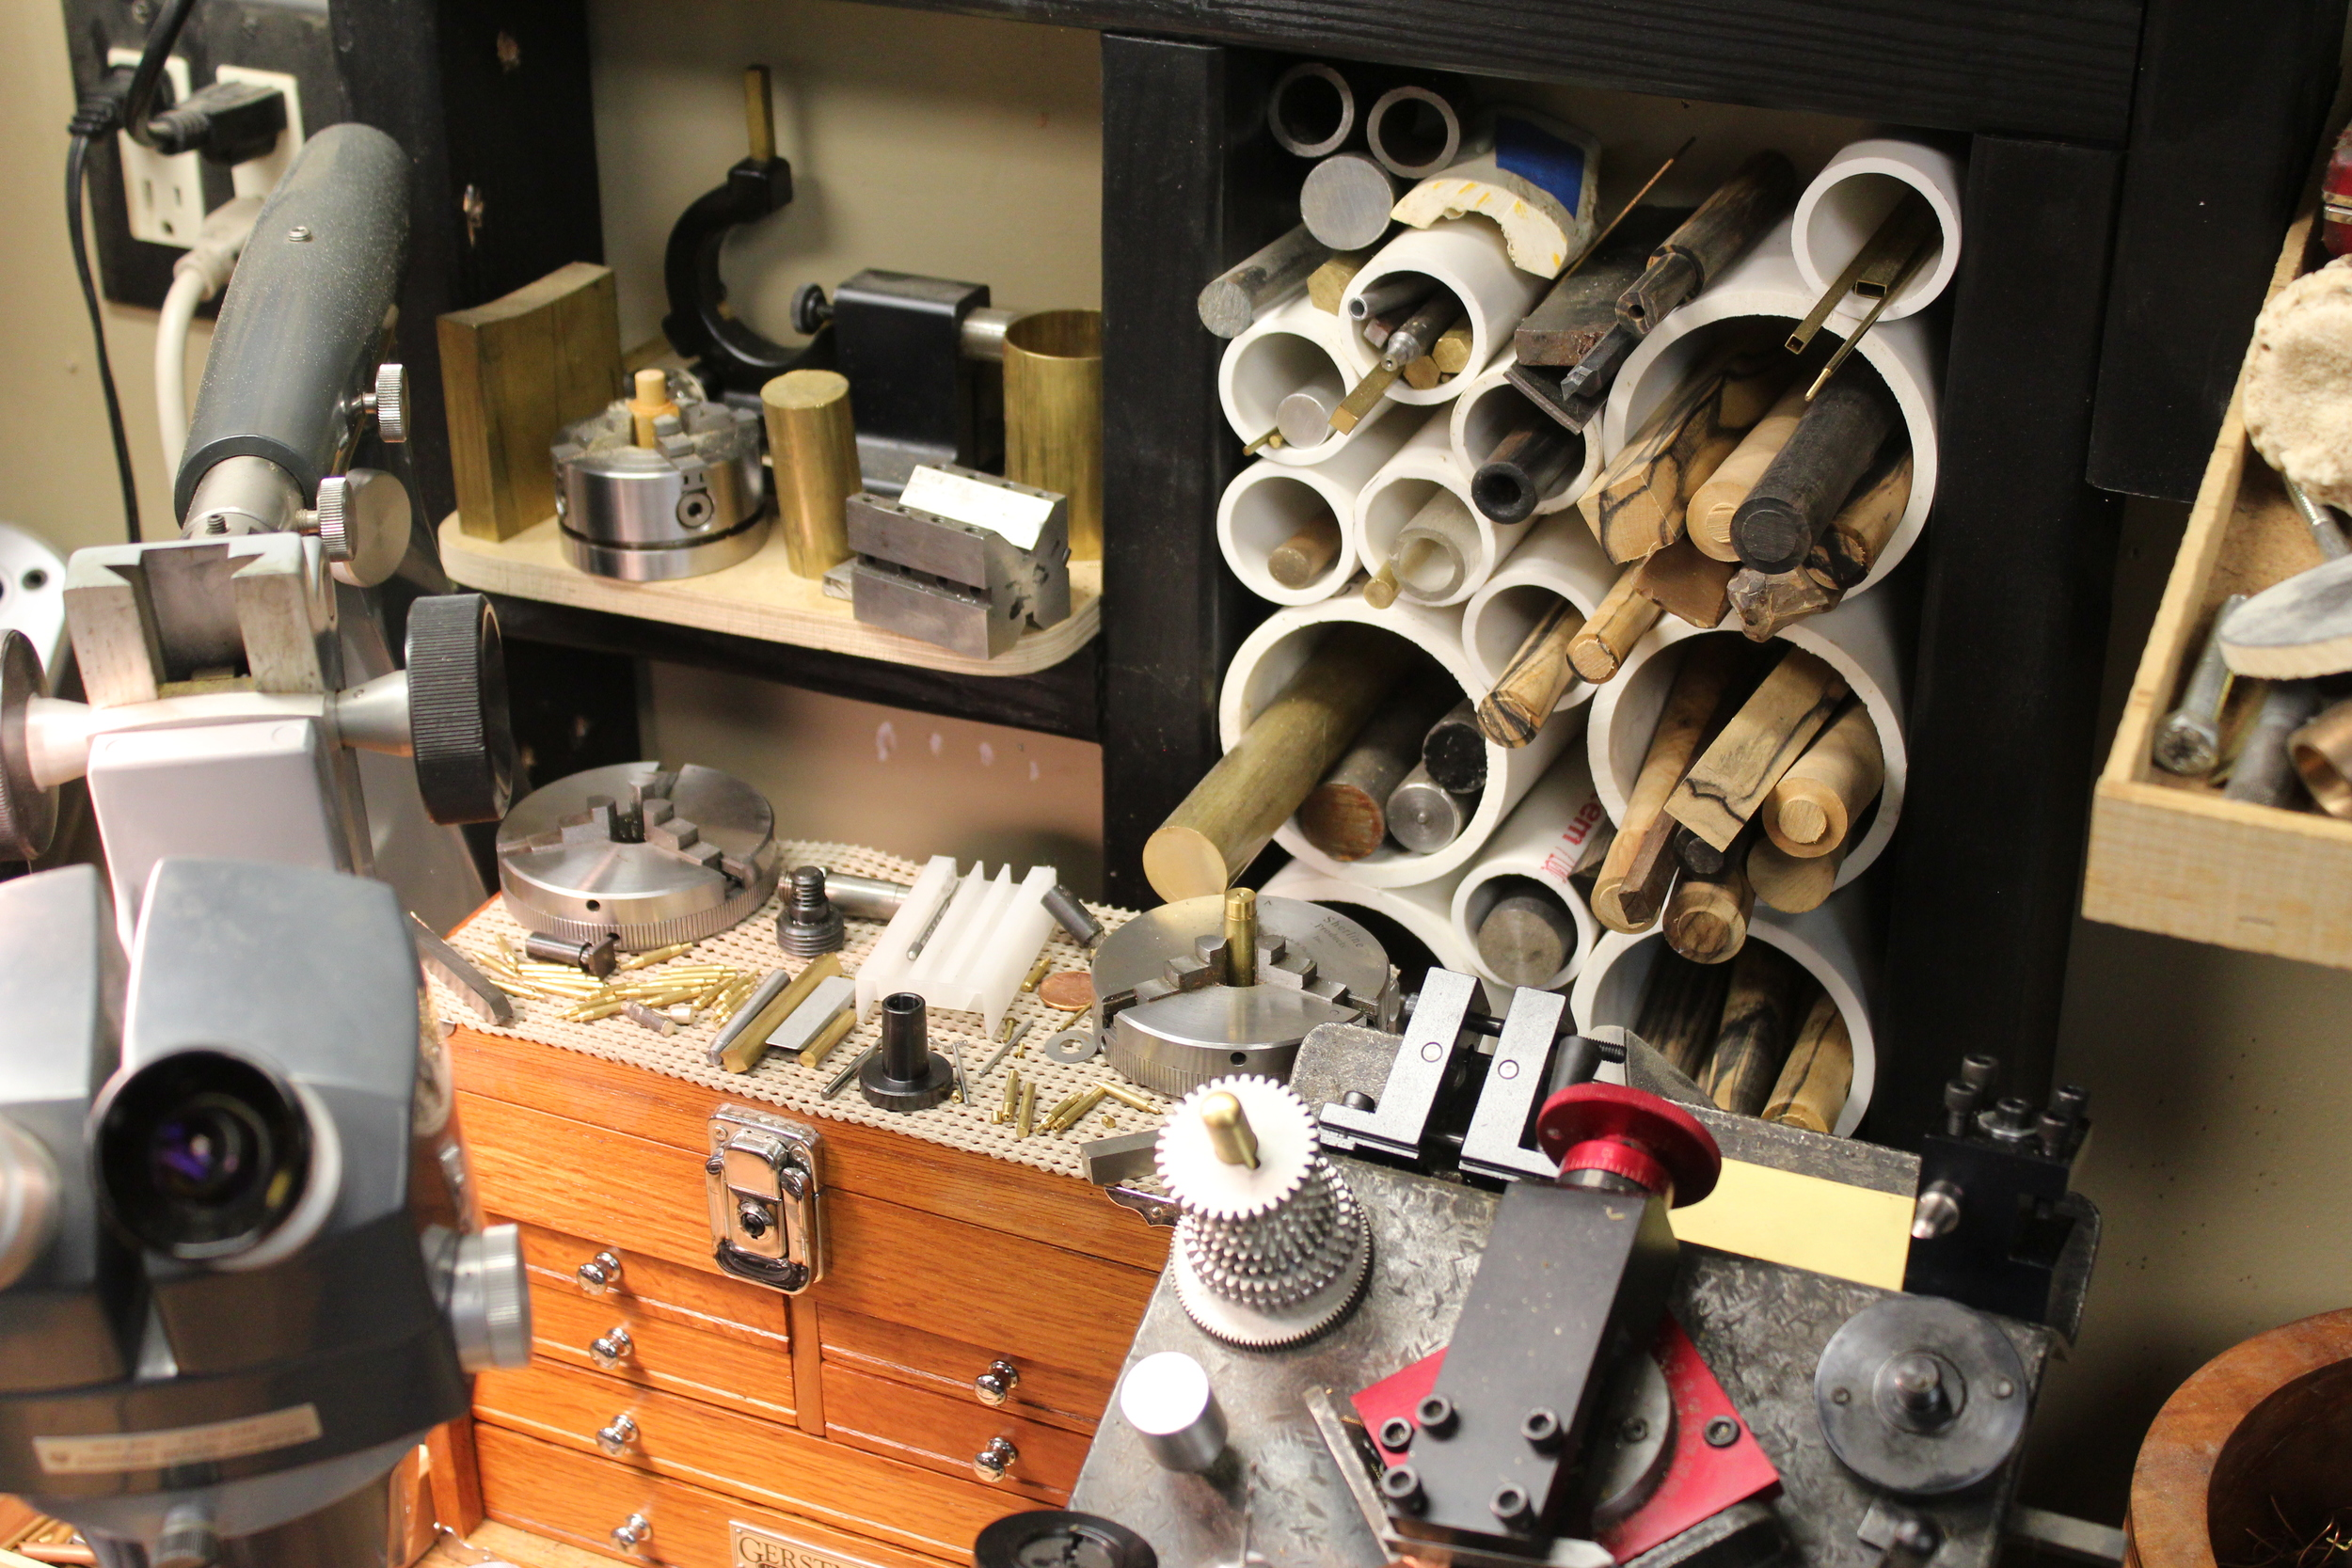 Some of the tools and materials that hang out around the lathe.